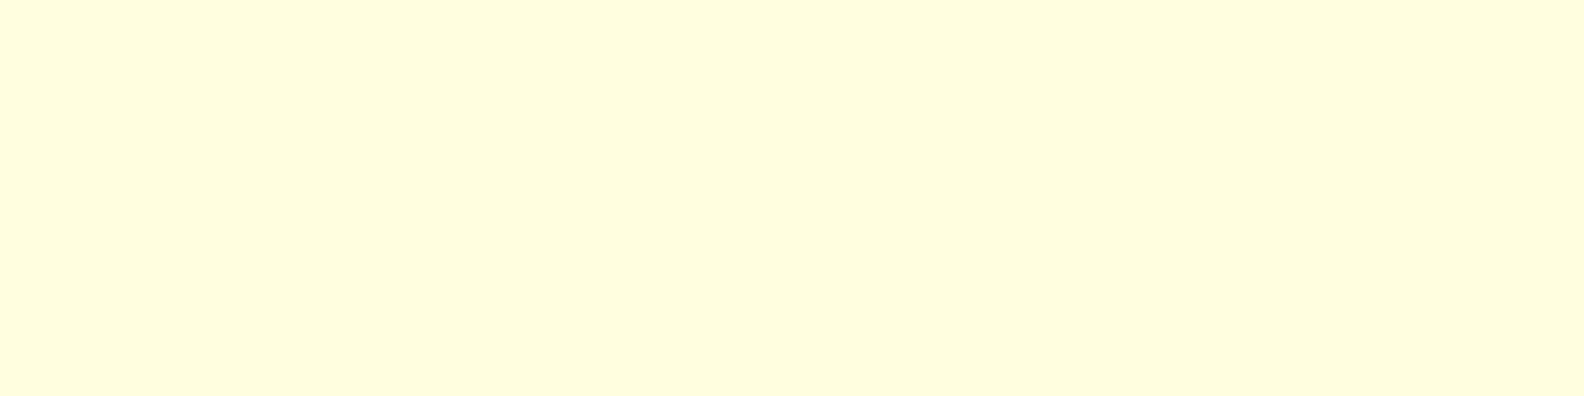 1584x396 Light Yellow Solid Color Background